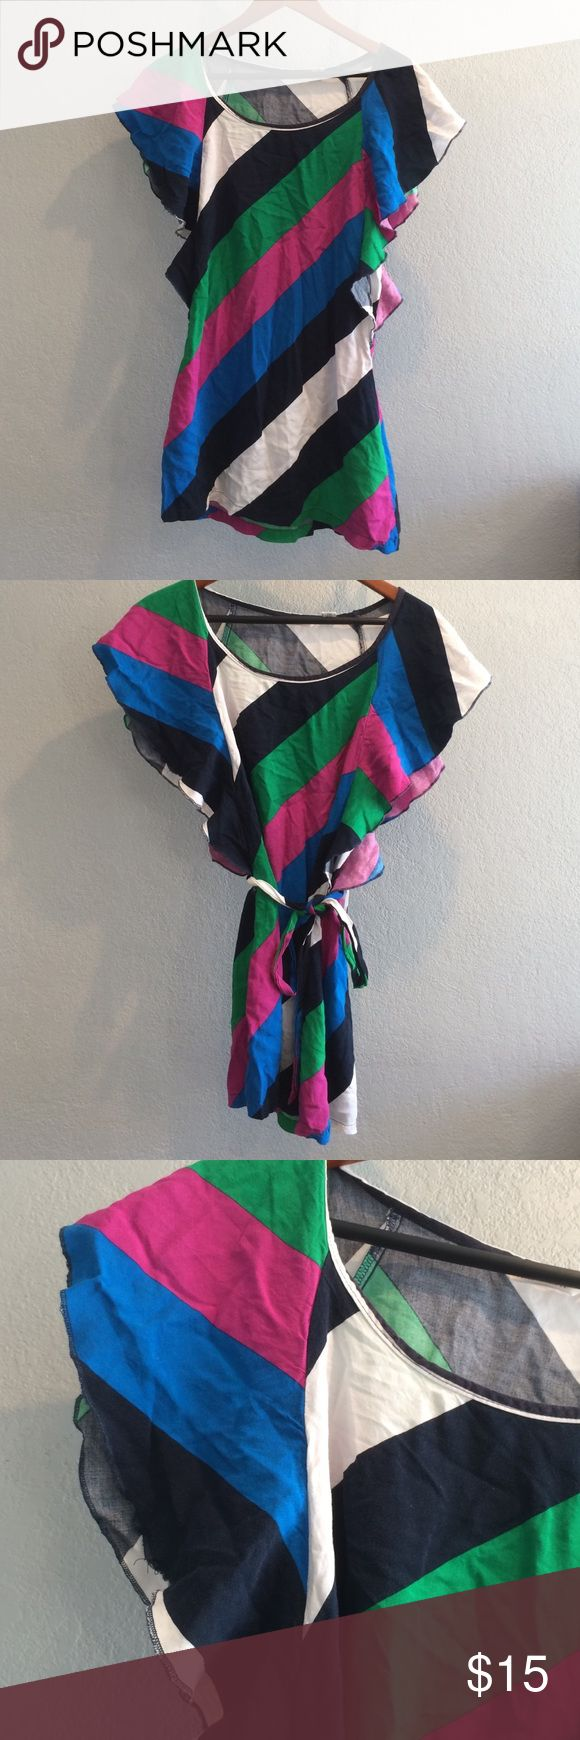 This is a colorful short short dress Very short mini dress- ties with that colorful strong- good condition- nicely worn Derek Heart Dresses Mini